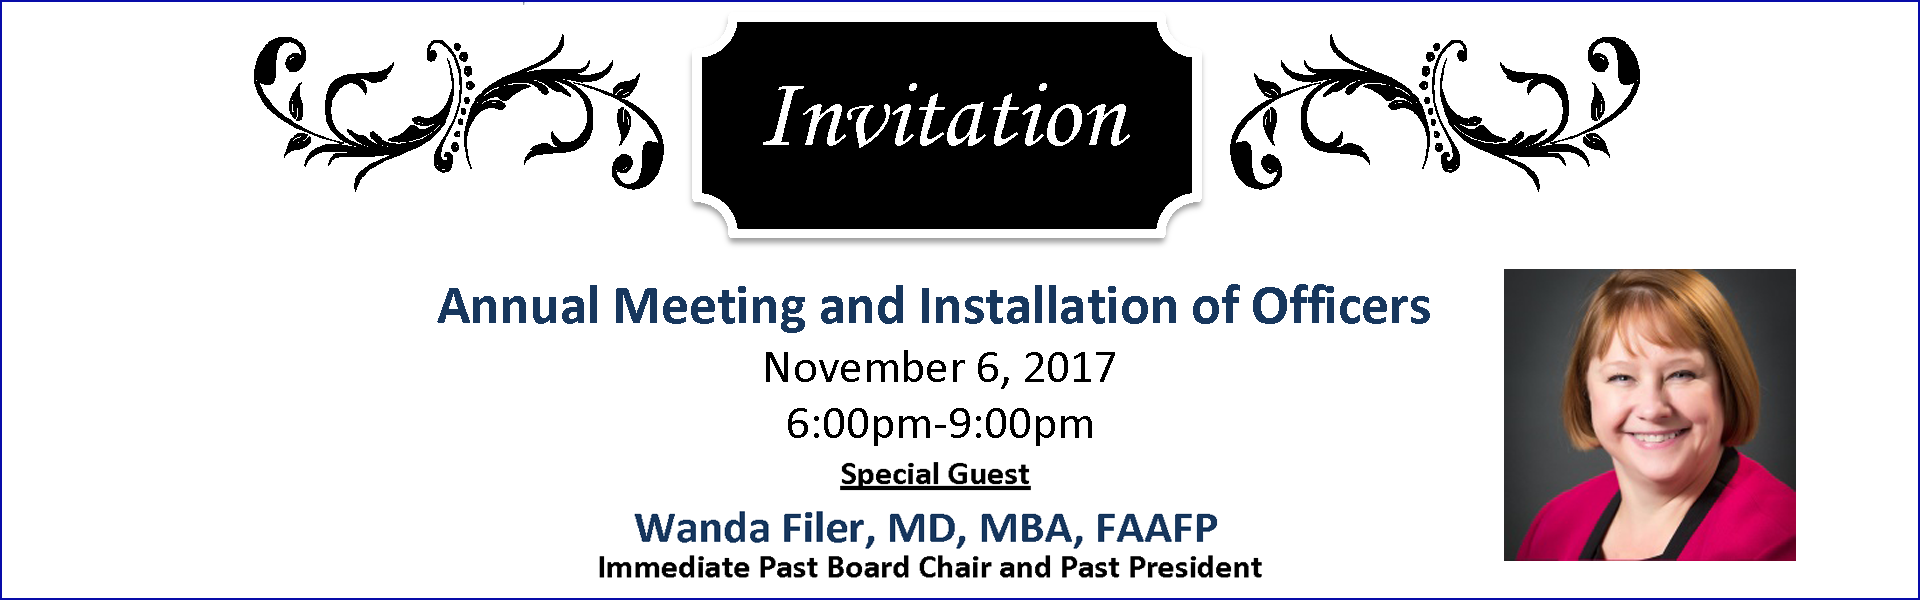 Annual Meeting and Installation of Officers